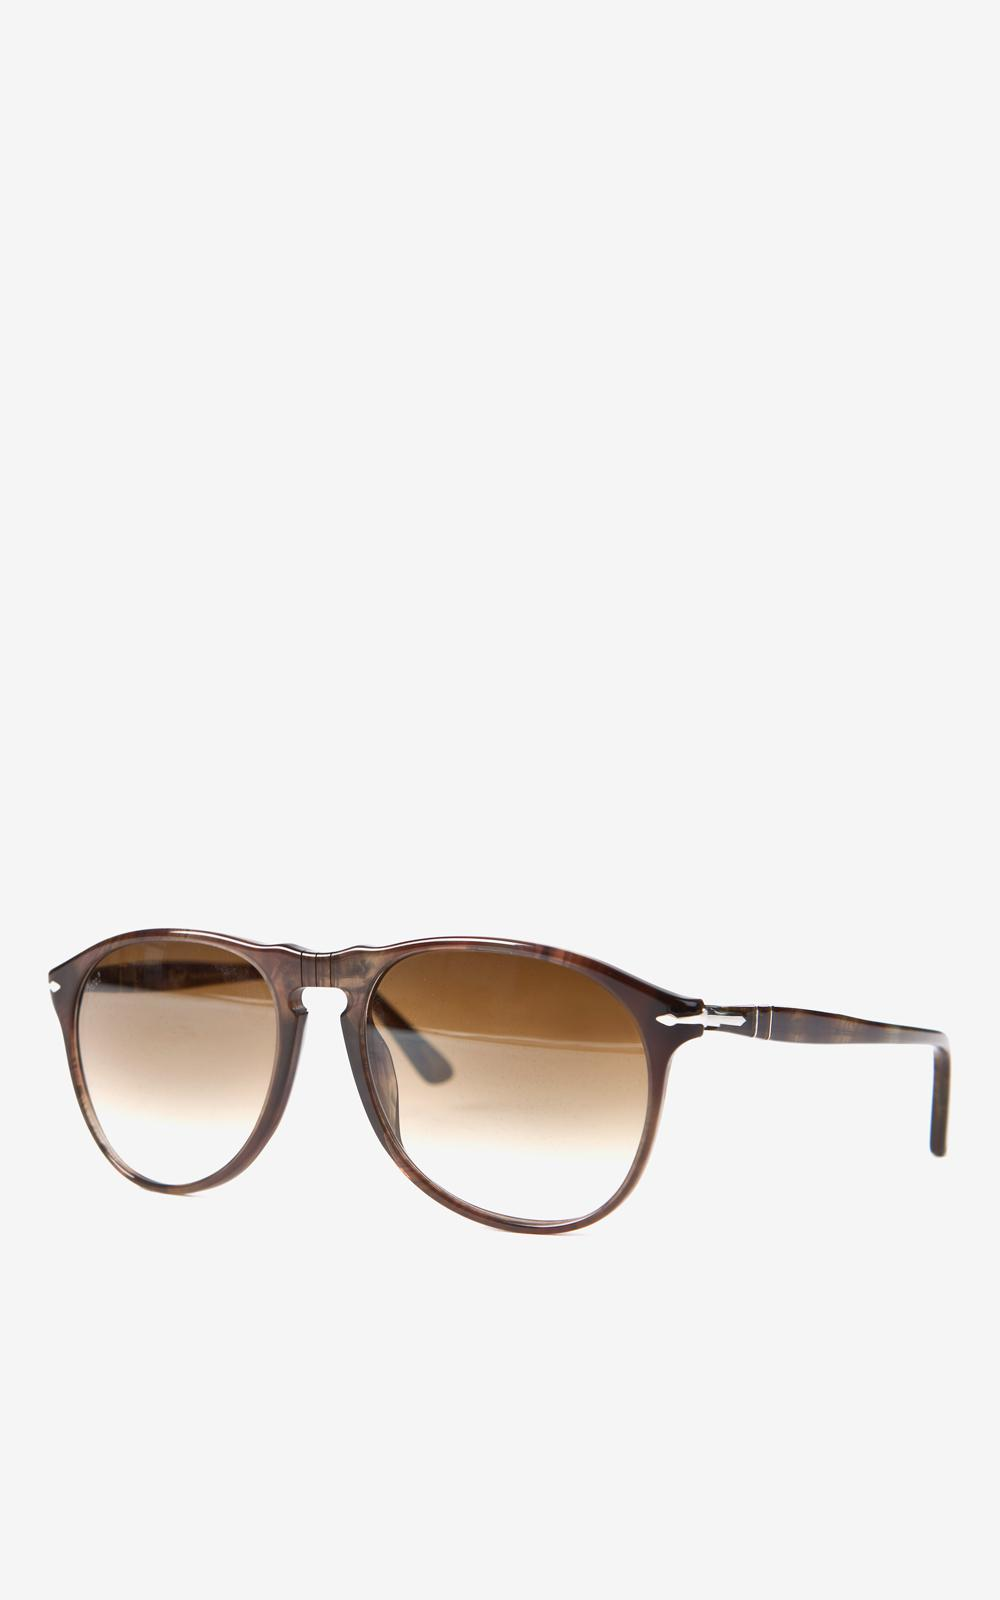 f4322181ce Lyst - Persol Po9649s 972 51 Smoky Havana Brown Faded 52mm in Brown